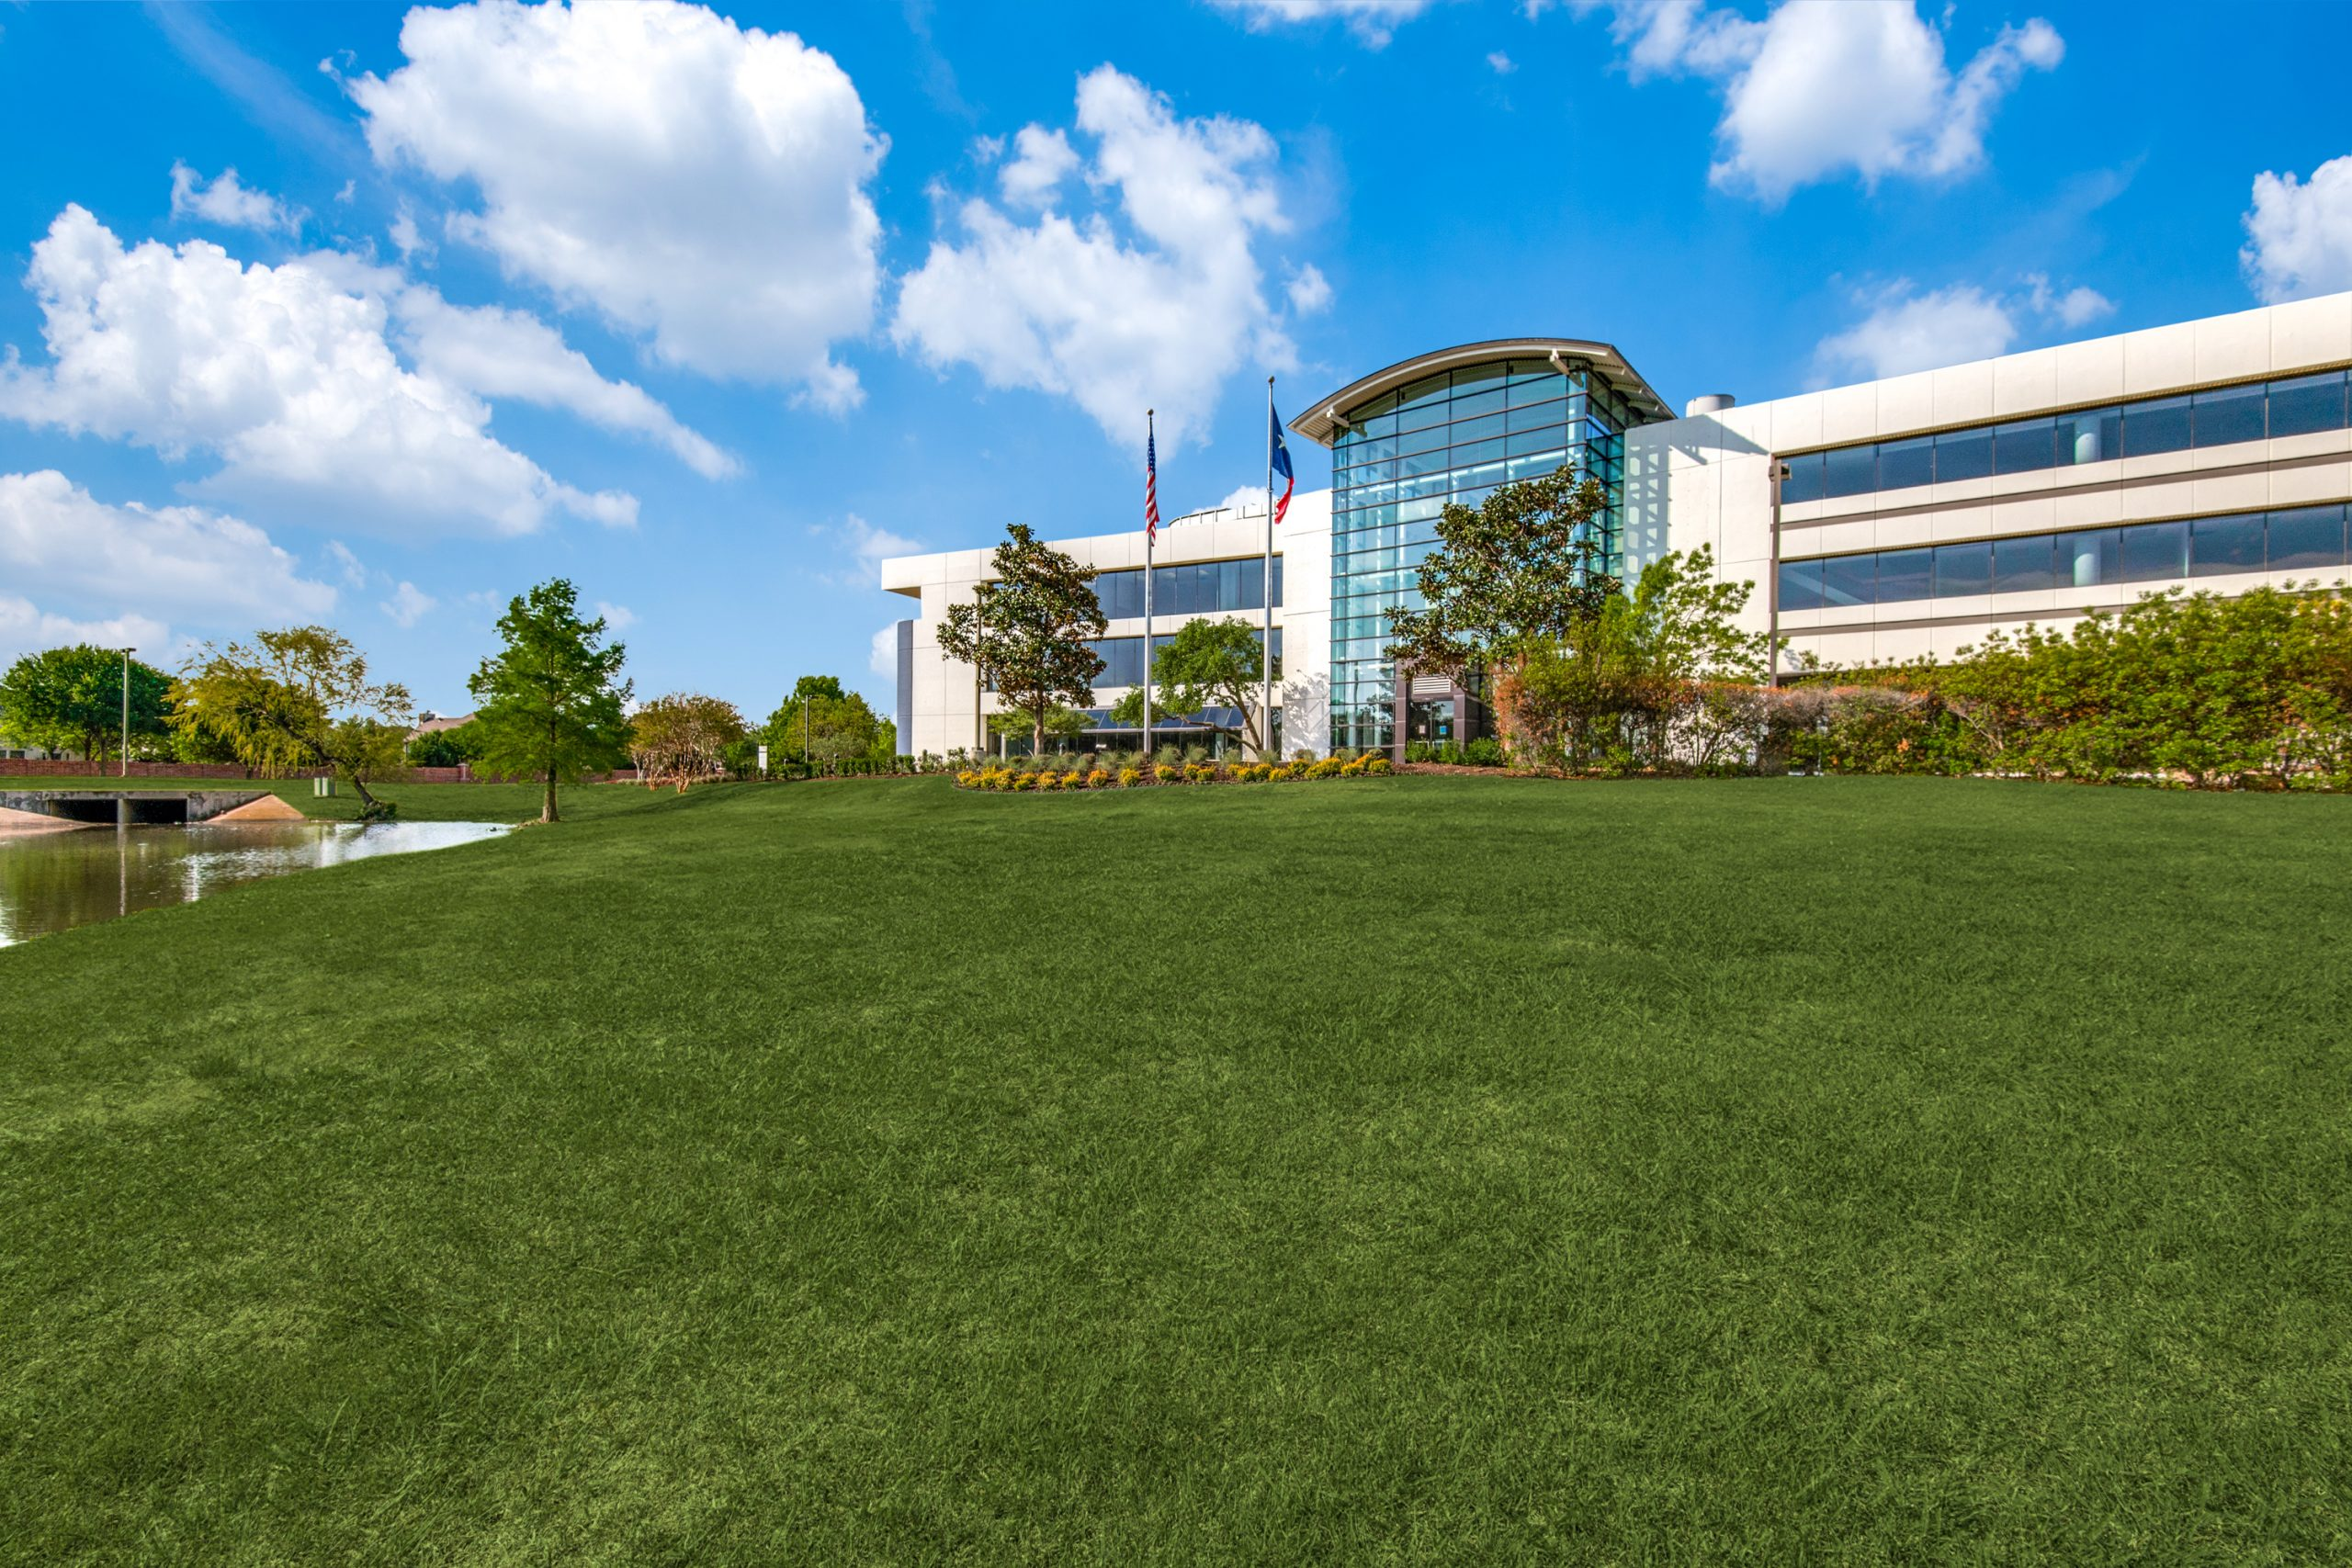 2901-kinwest-pkwy-irving-tx-75063-High-Res-6